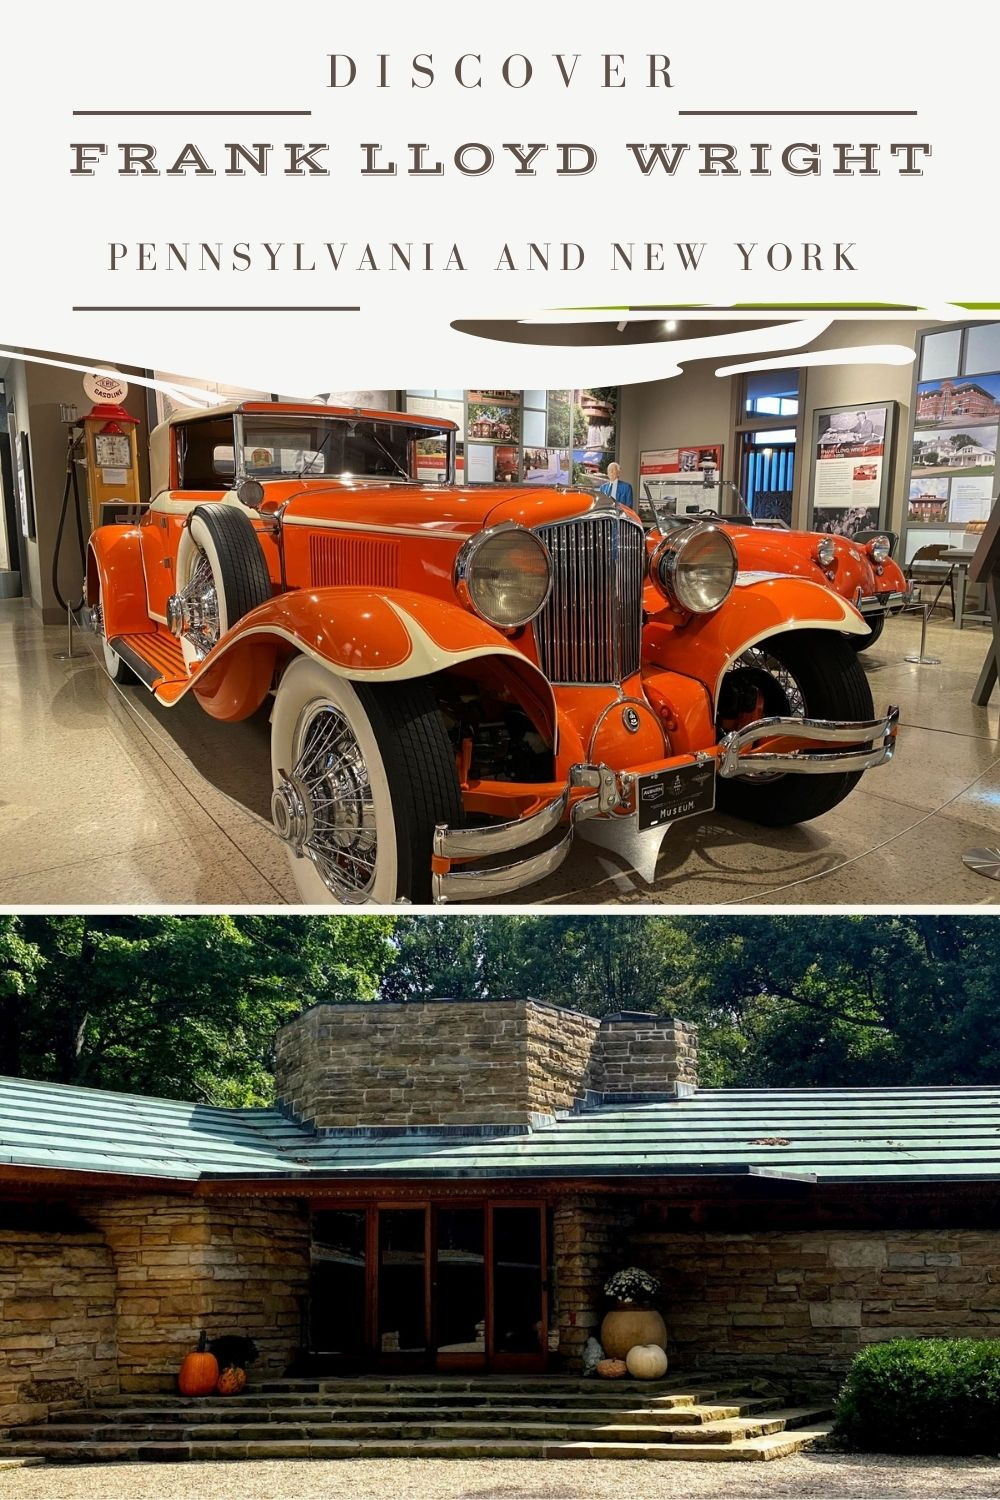 The Great Wright Road Trip goes through PA and NY to explore Frank Lloyd Wright's career arc, from Prairie Style to his career-defining Usonian design. See his San Francisco office in Erie, PA -- yes, the actual one! Frank Lloyd Wright houses in PA and NY make a unique road trip idea. via @karendawkins